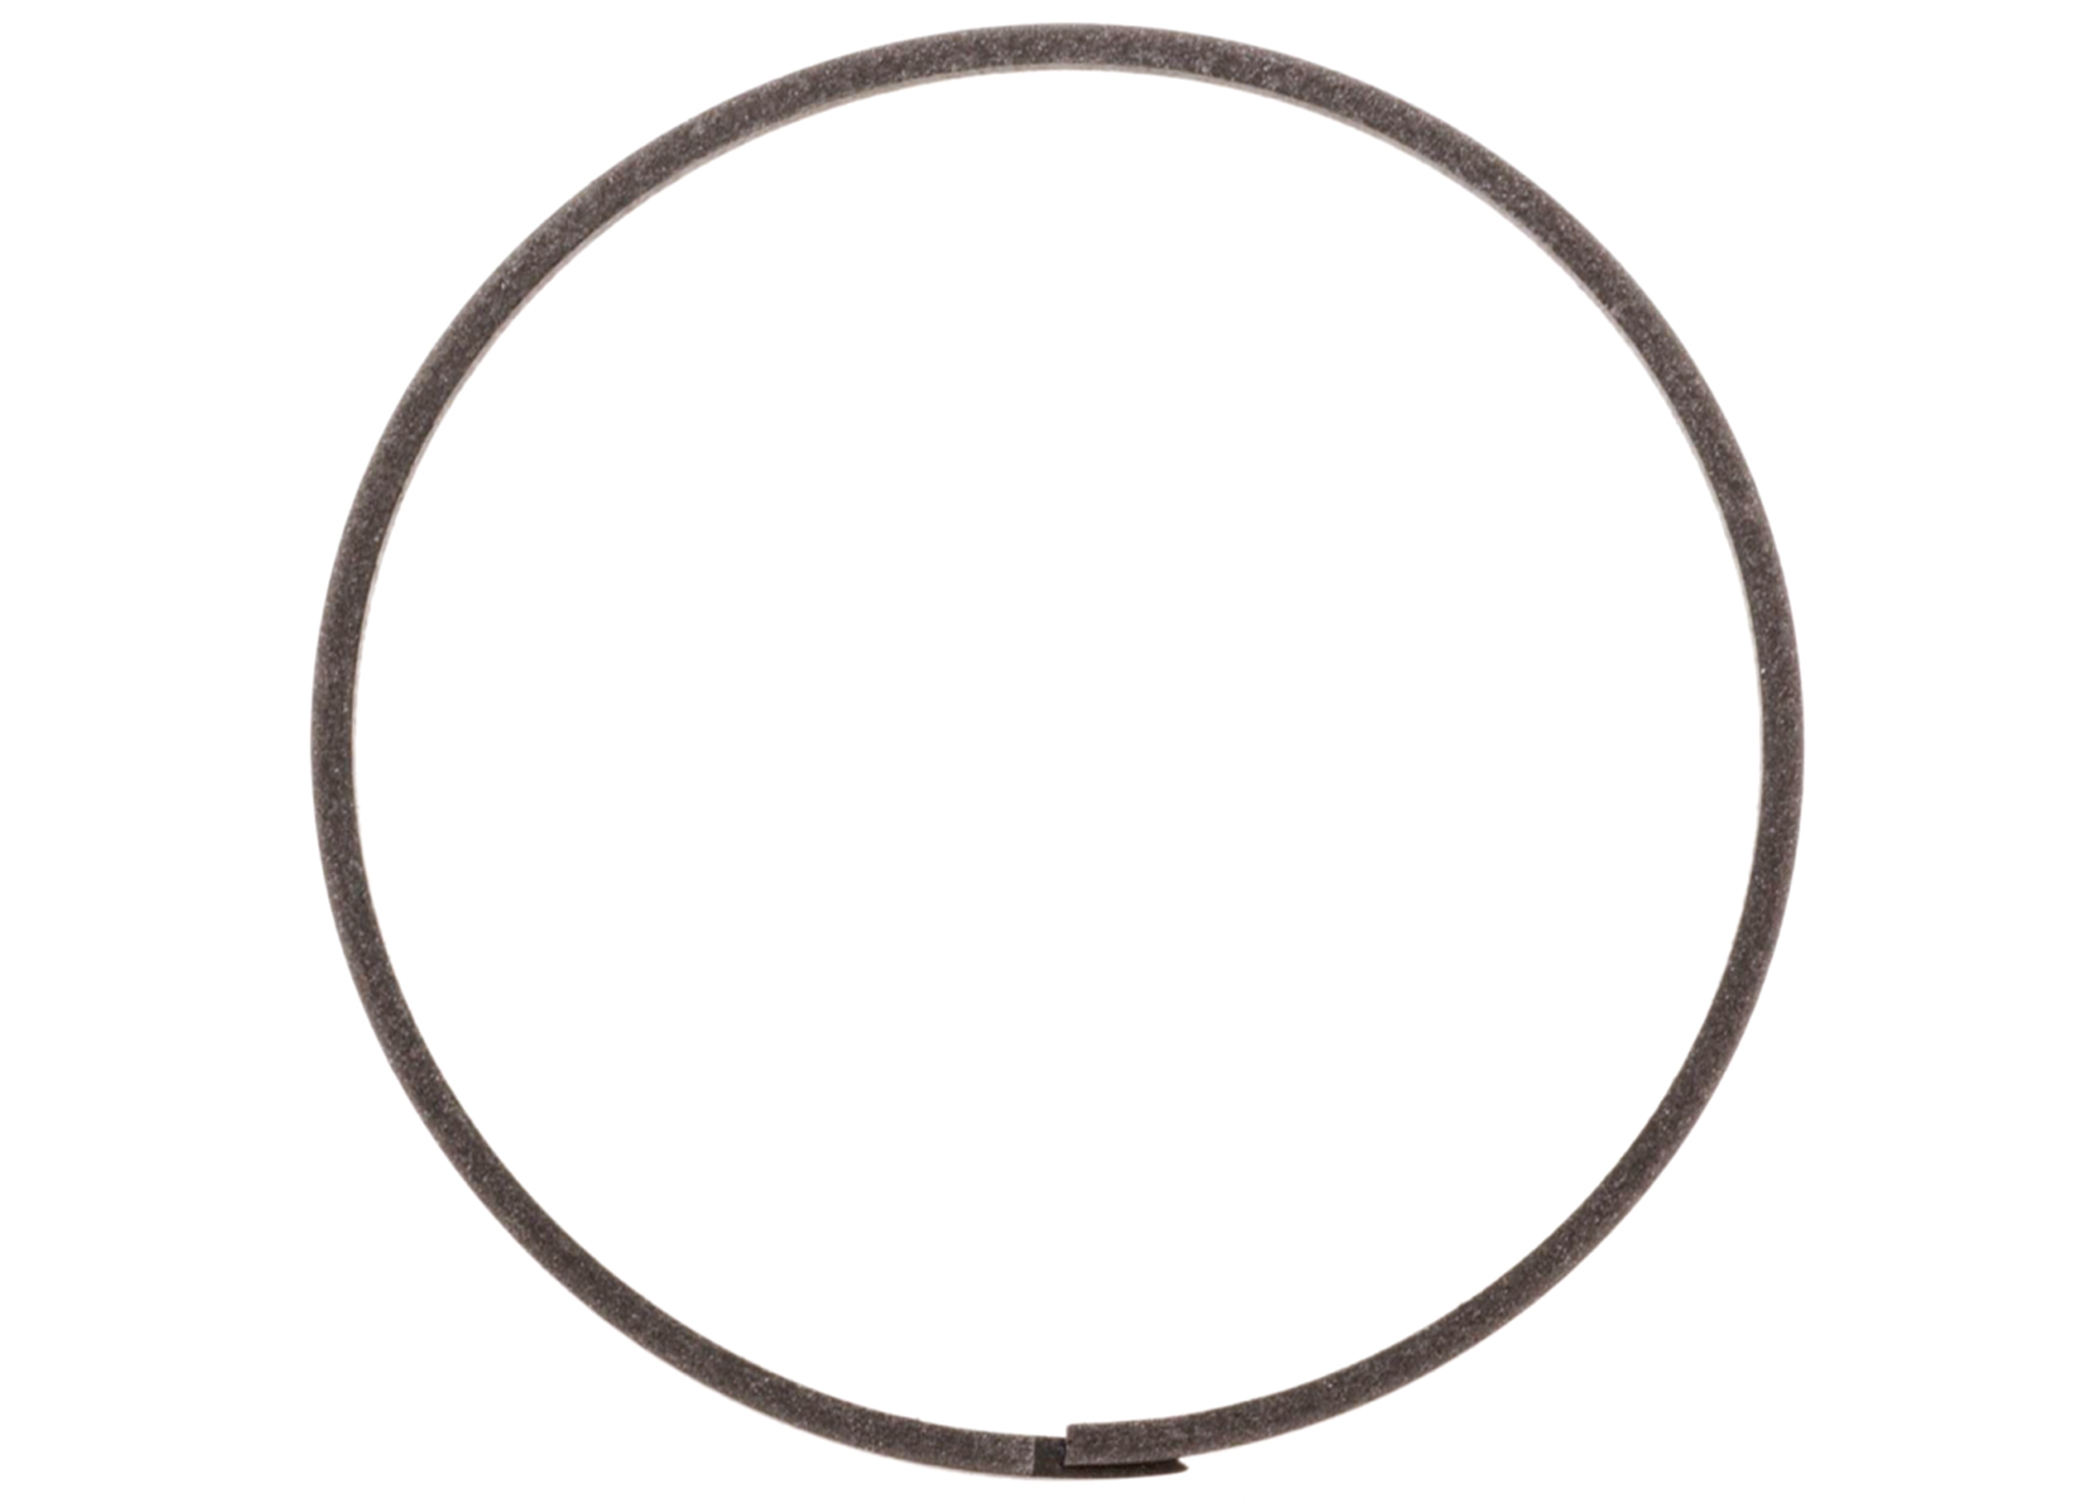 ACDELCO OE SERVICE - 2-4 Band Servo Piston Fluid Seal Ring - DCB 8642480